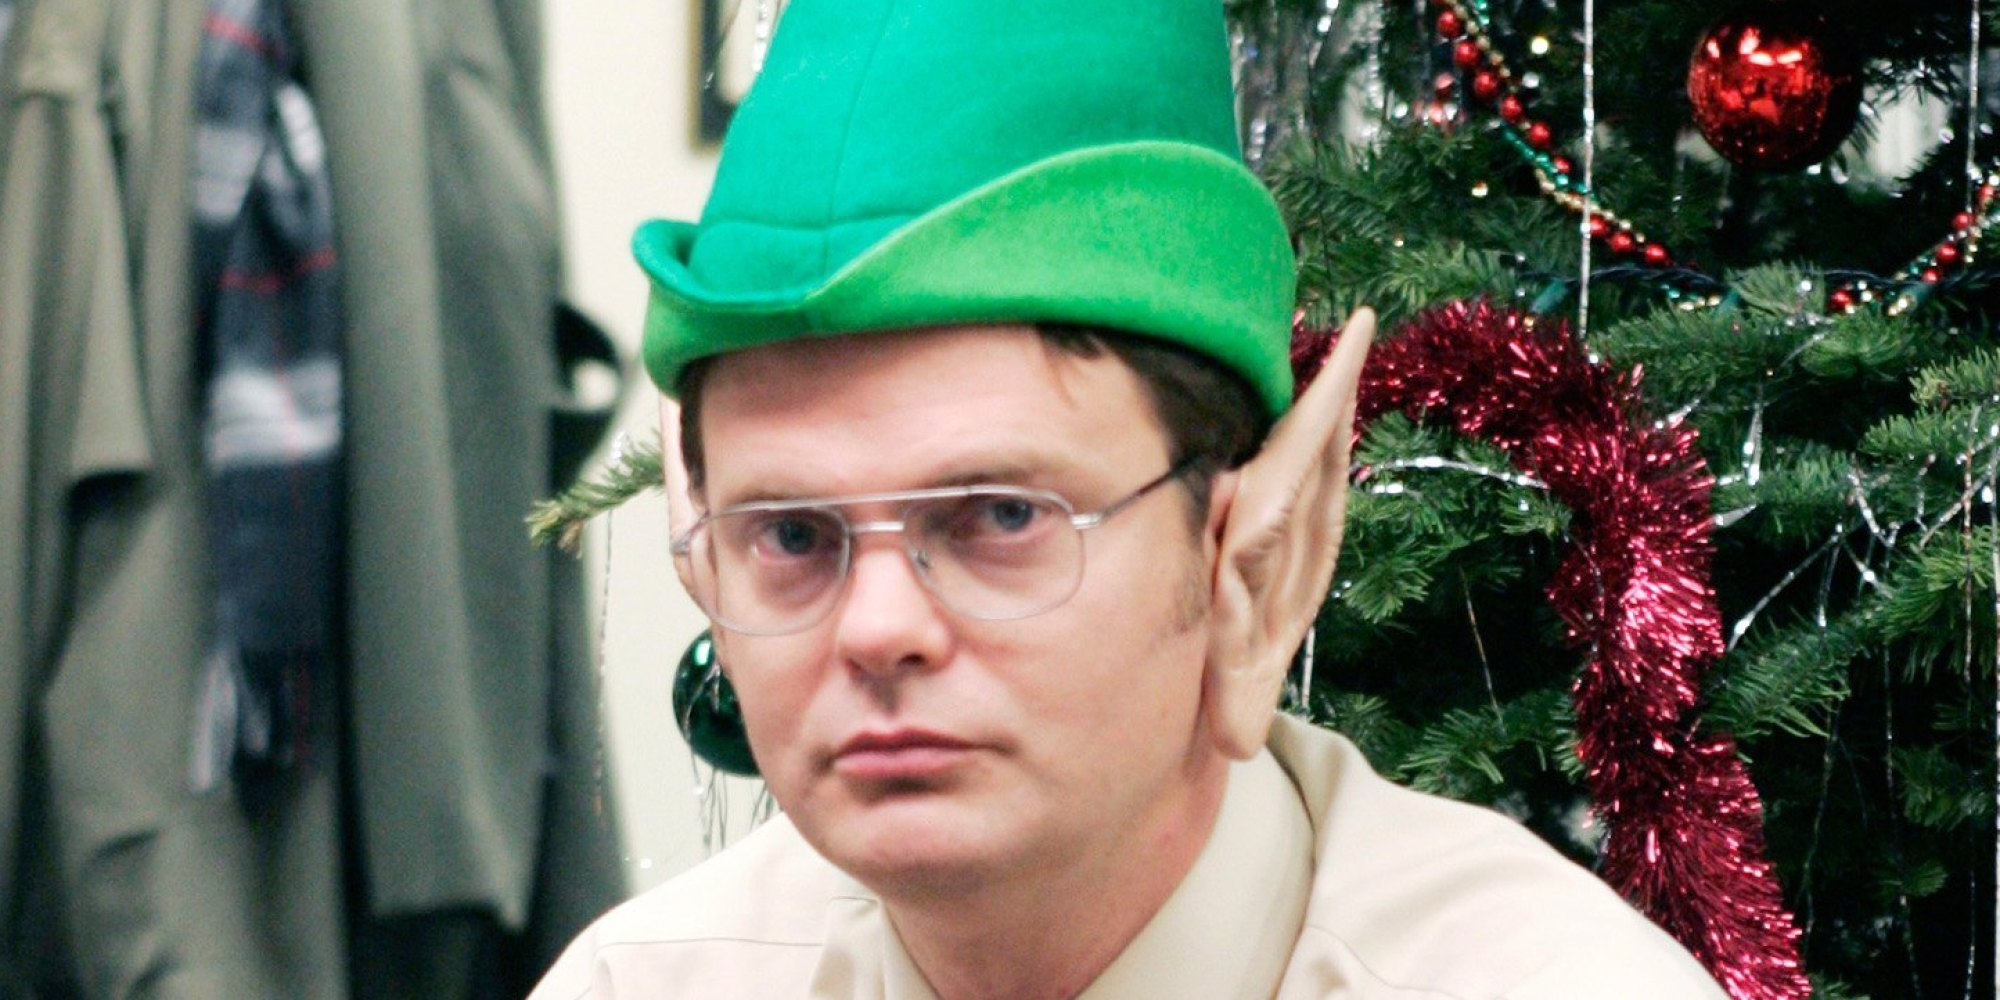 """THE OFFICE -- """"The Christmas Party"""" Episode 10 -- Aired 12/06/2005 -- Pictured: Rainn Wilson as Dwight Schrute -- Photo by: Paul Drinkwater/NBCU Photo Bank"""